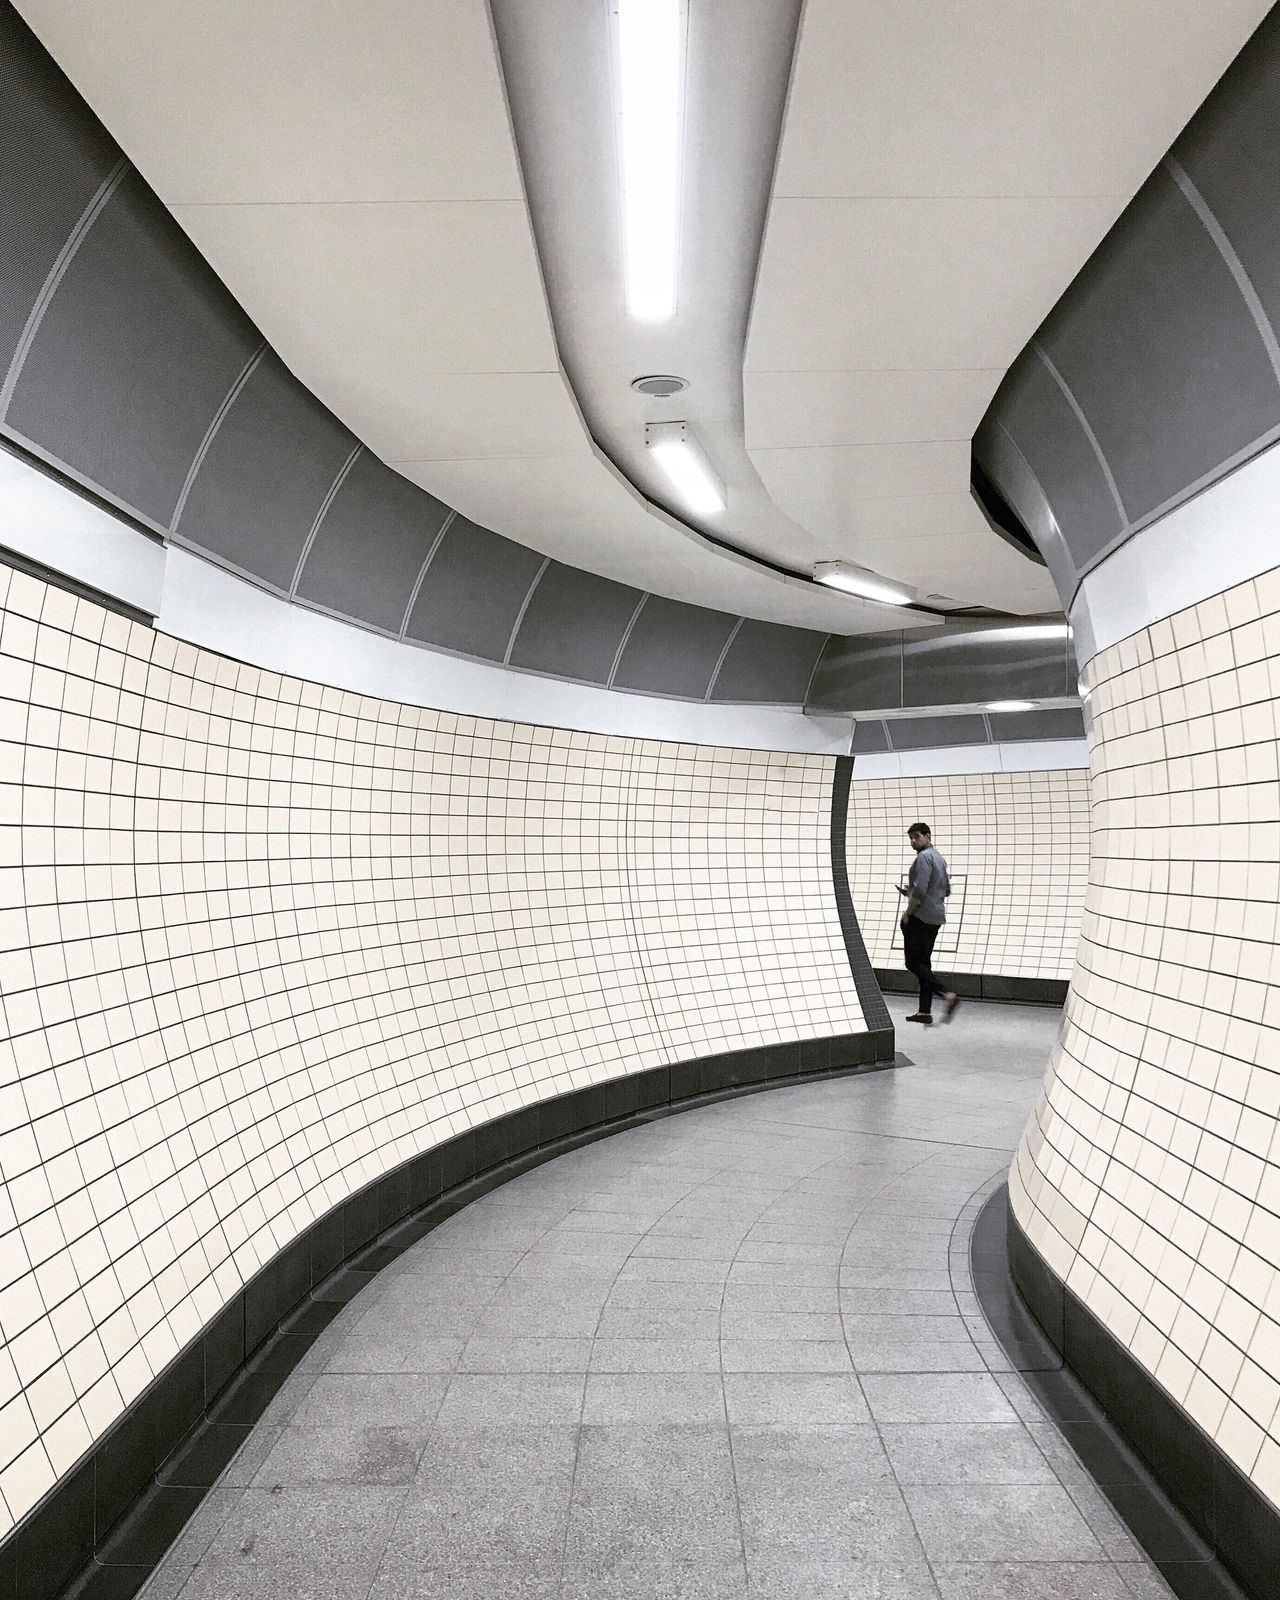 EyeEm LOST iN London one person full length Architecture walking indoors built structure the way forward Modern Futuristic one man only tunnel Underground London